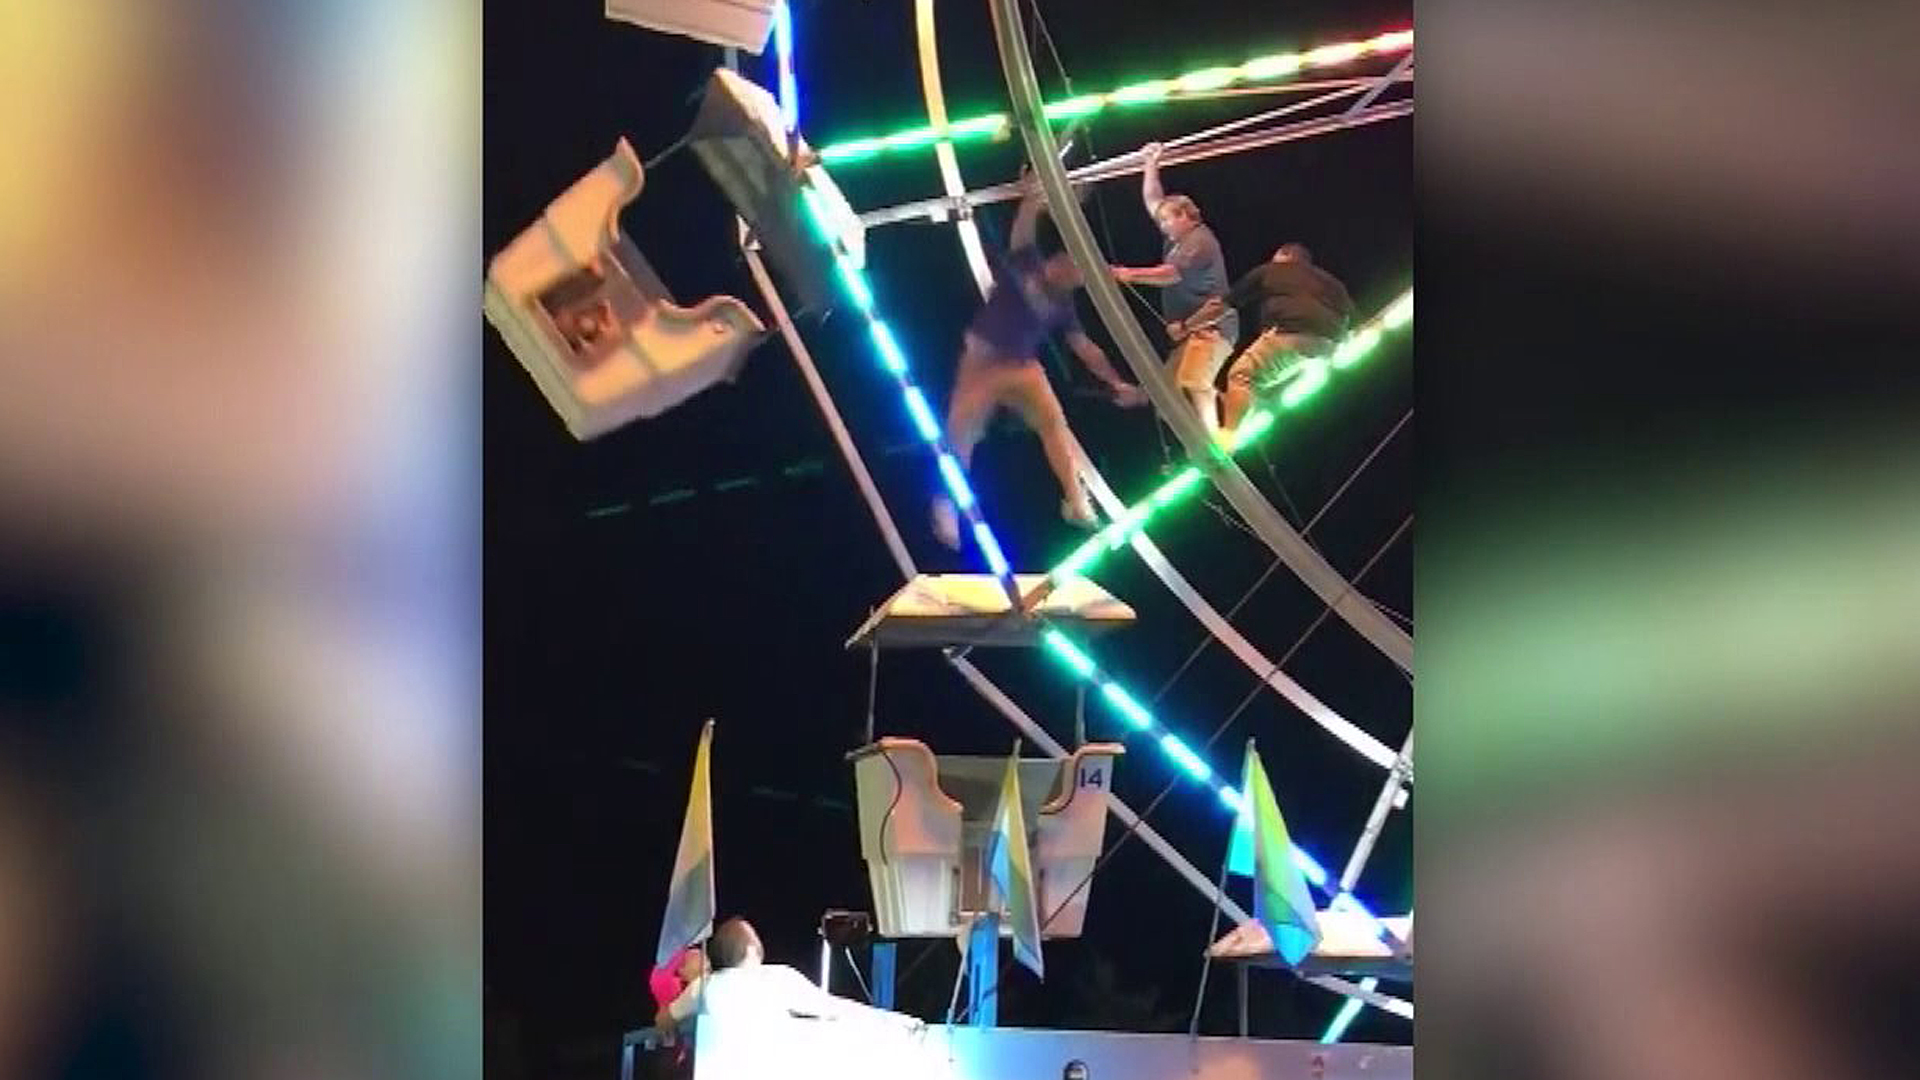 A worker was injured in a fall at a fair in North Carolina on Sept. 15m 2017. (Credit: Crystal Lowe/Facebook via CNN Wire)